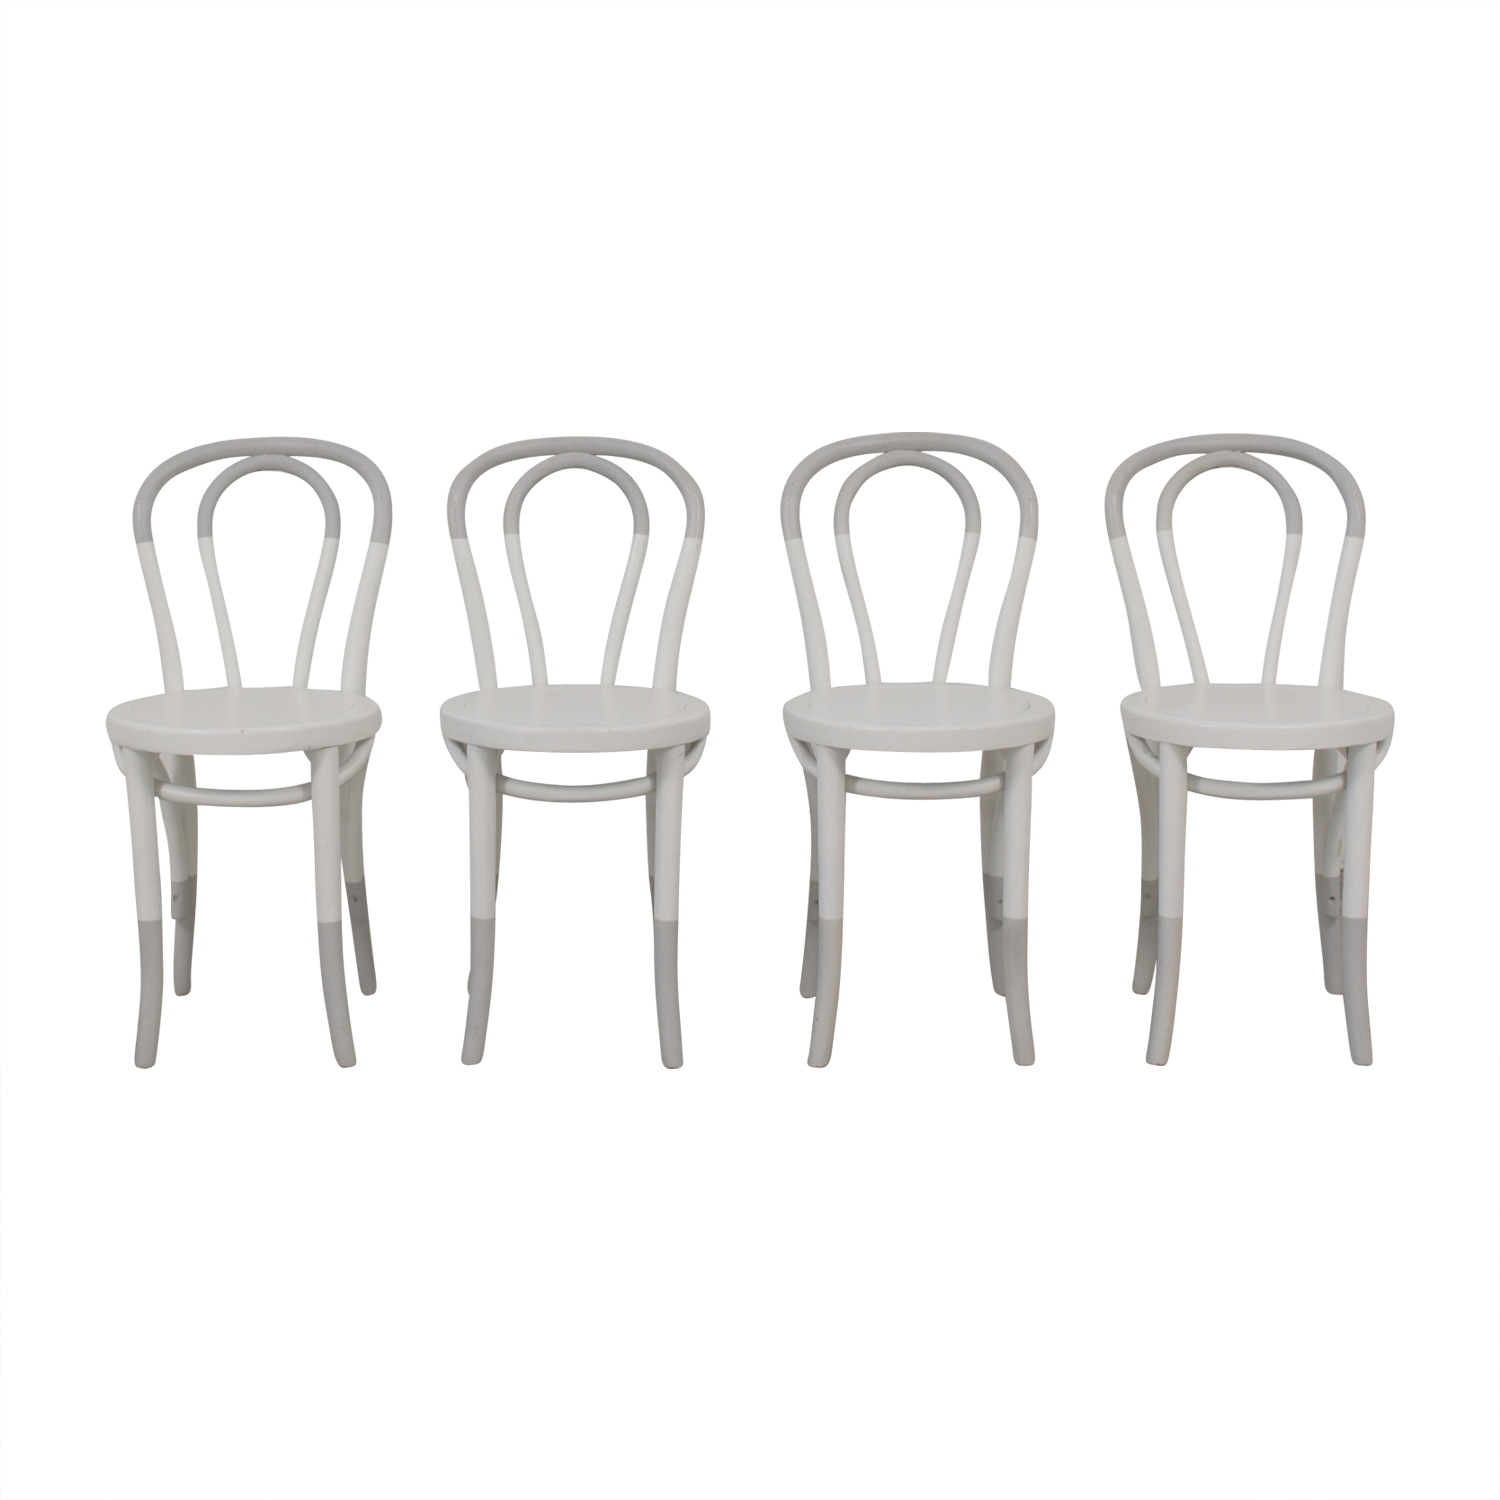 Restoration Hardware Restoration Hardware White Bentwood Chairs used